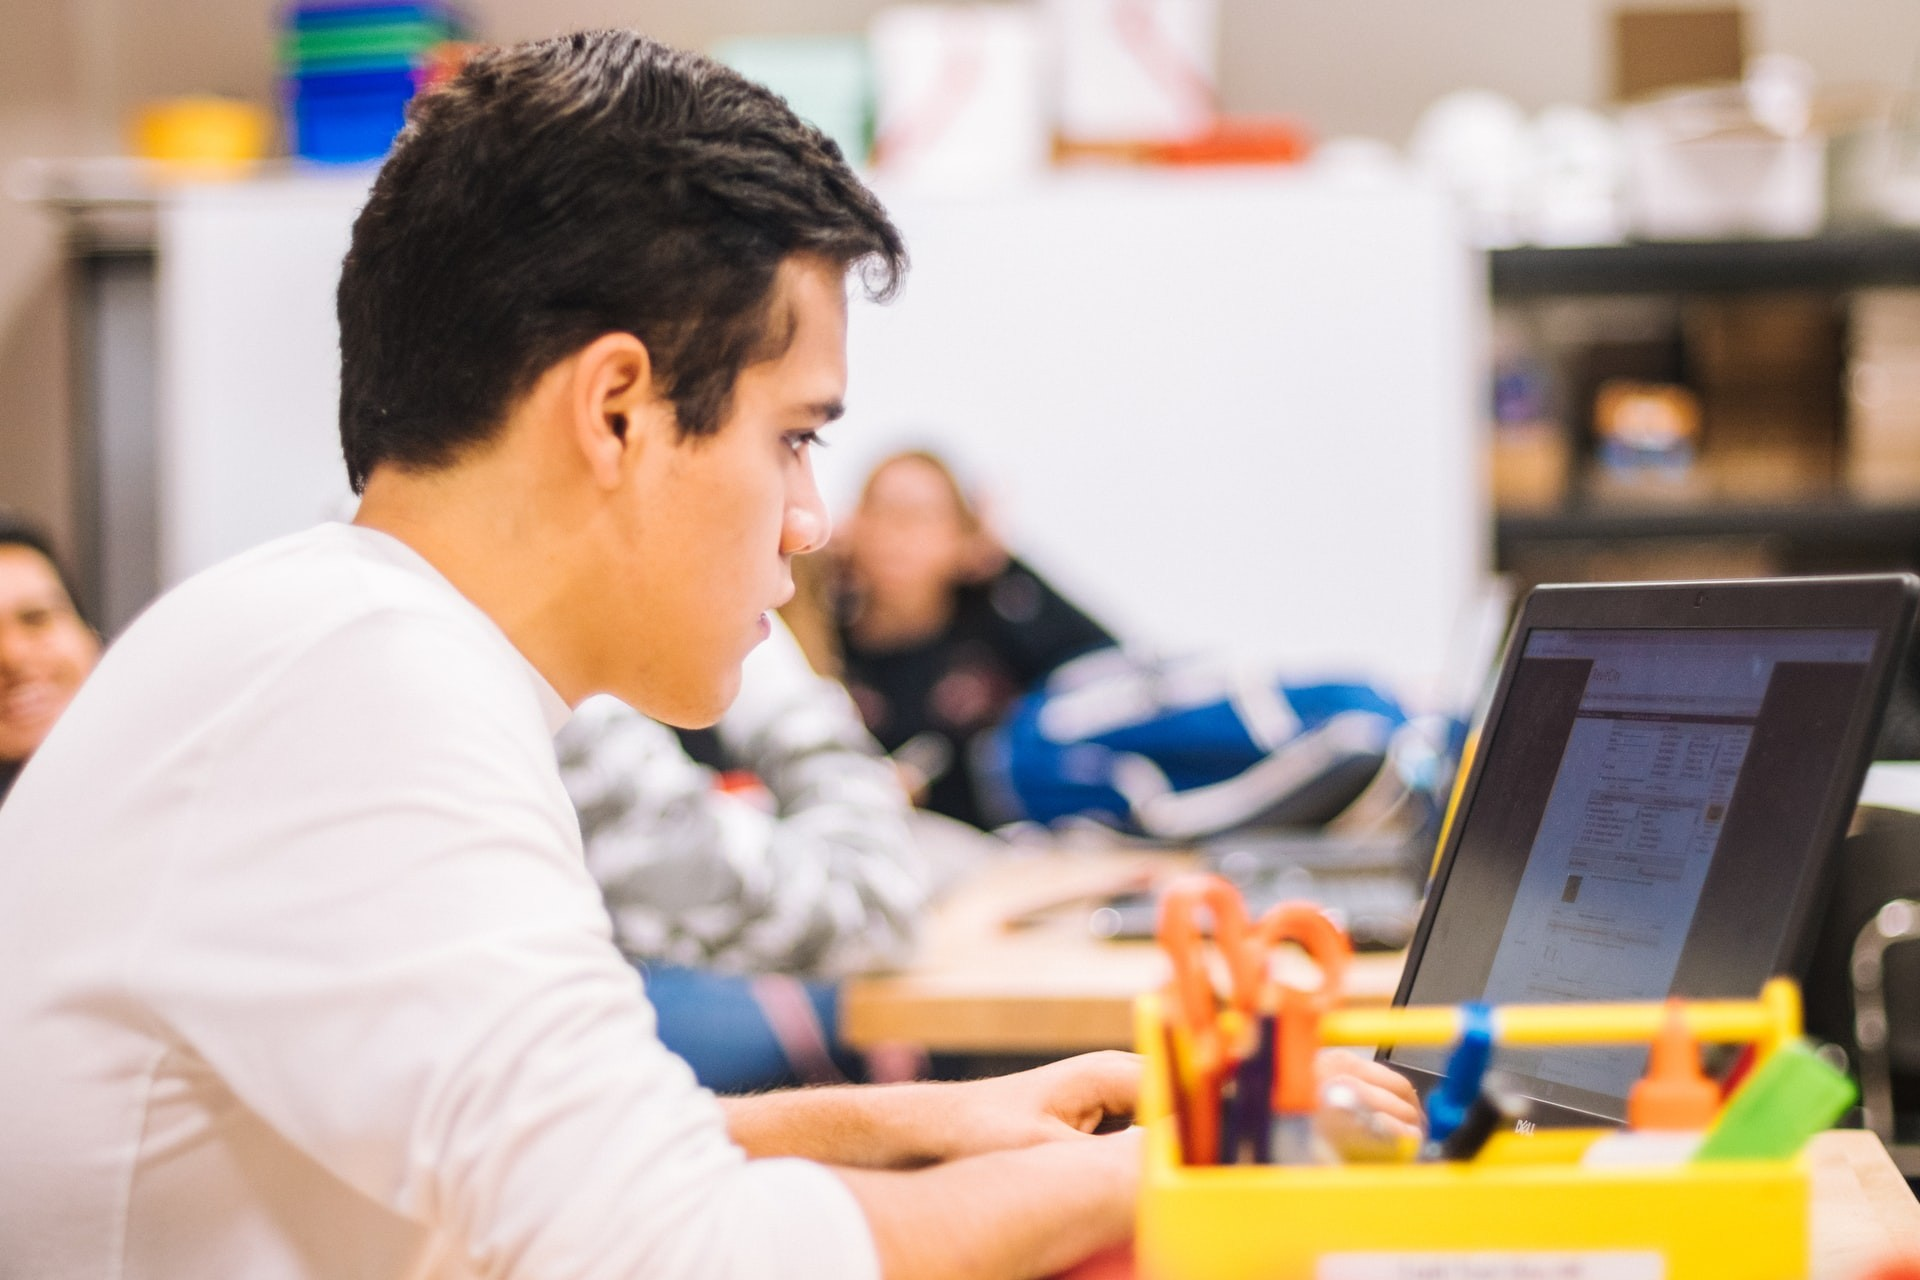 A male student works on a computer in the classroom after returning to in-person learning.